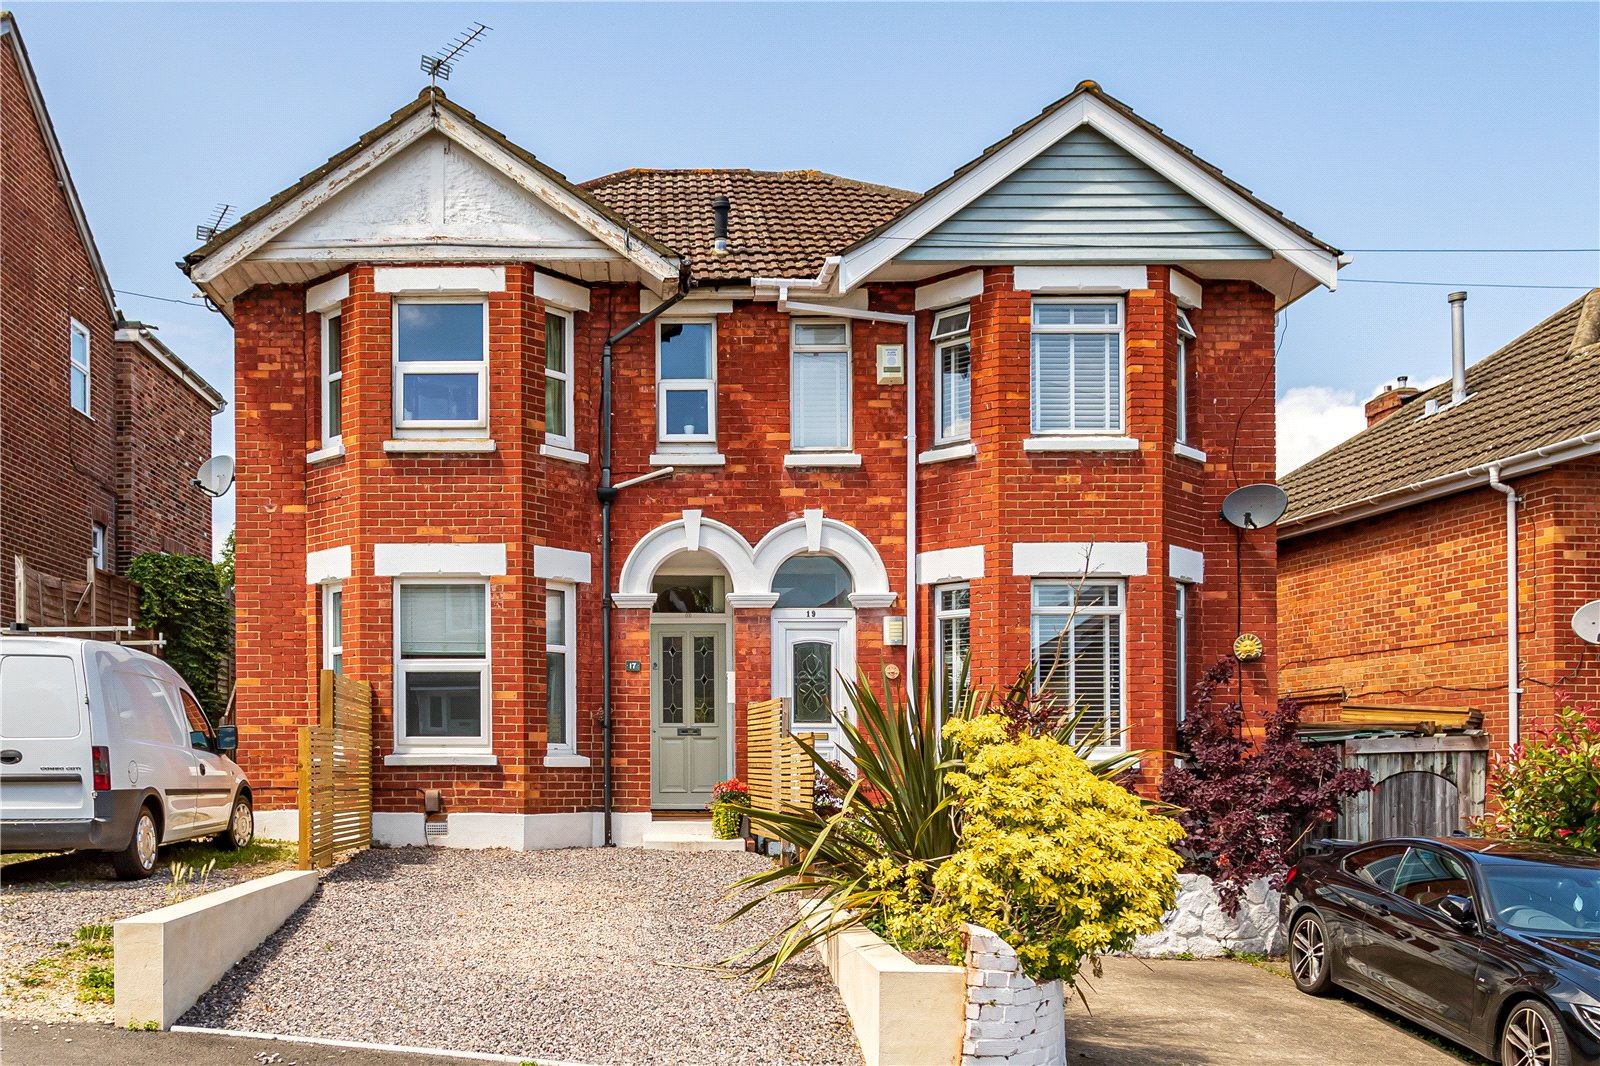 2 bed apartment for sale in Davis Road, Parkstone - Property Image 1